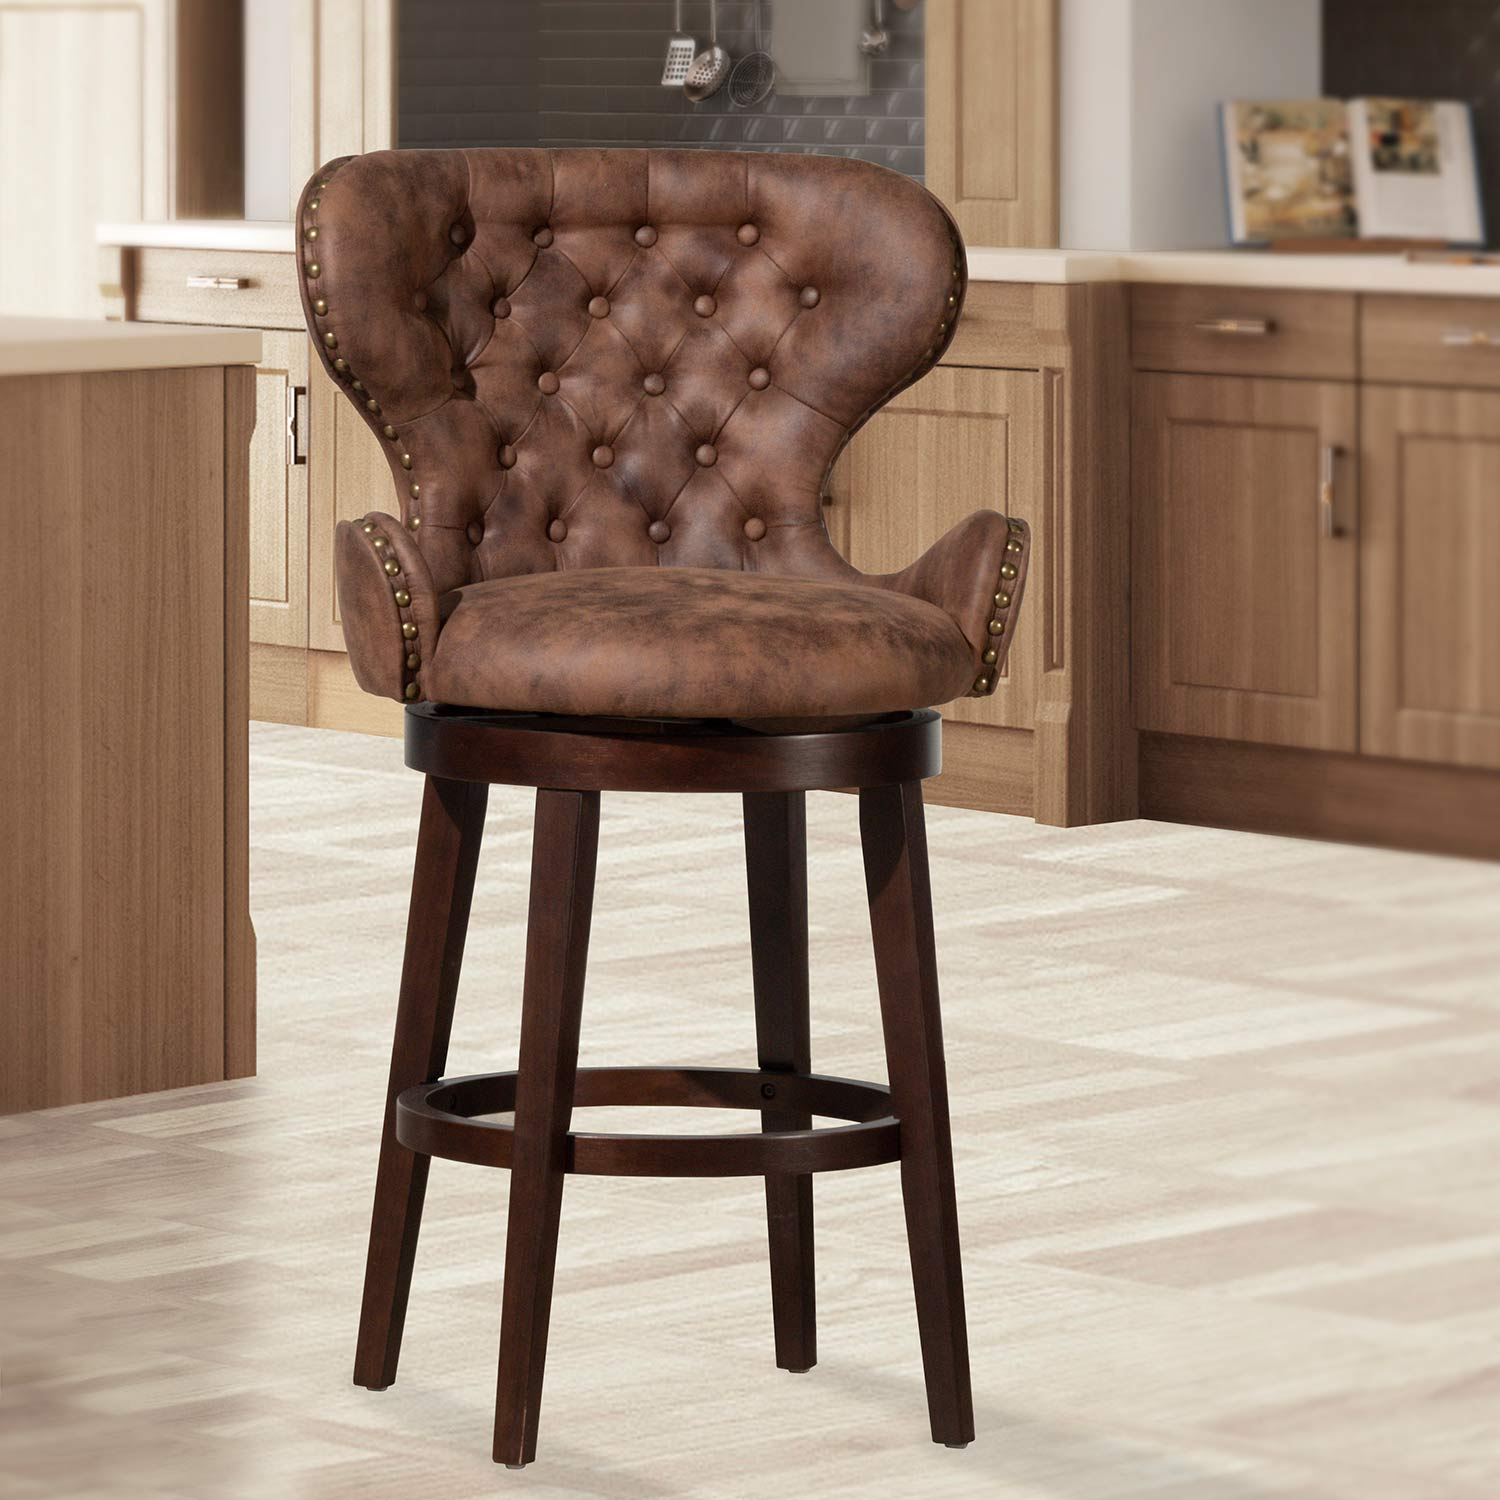 Hillsdale Mid-City Wood and Upholstered Swivel Bar Height Stool - Chocolate